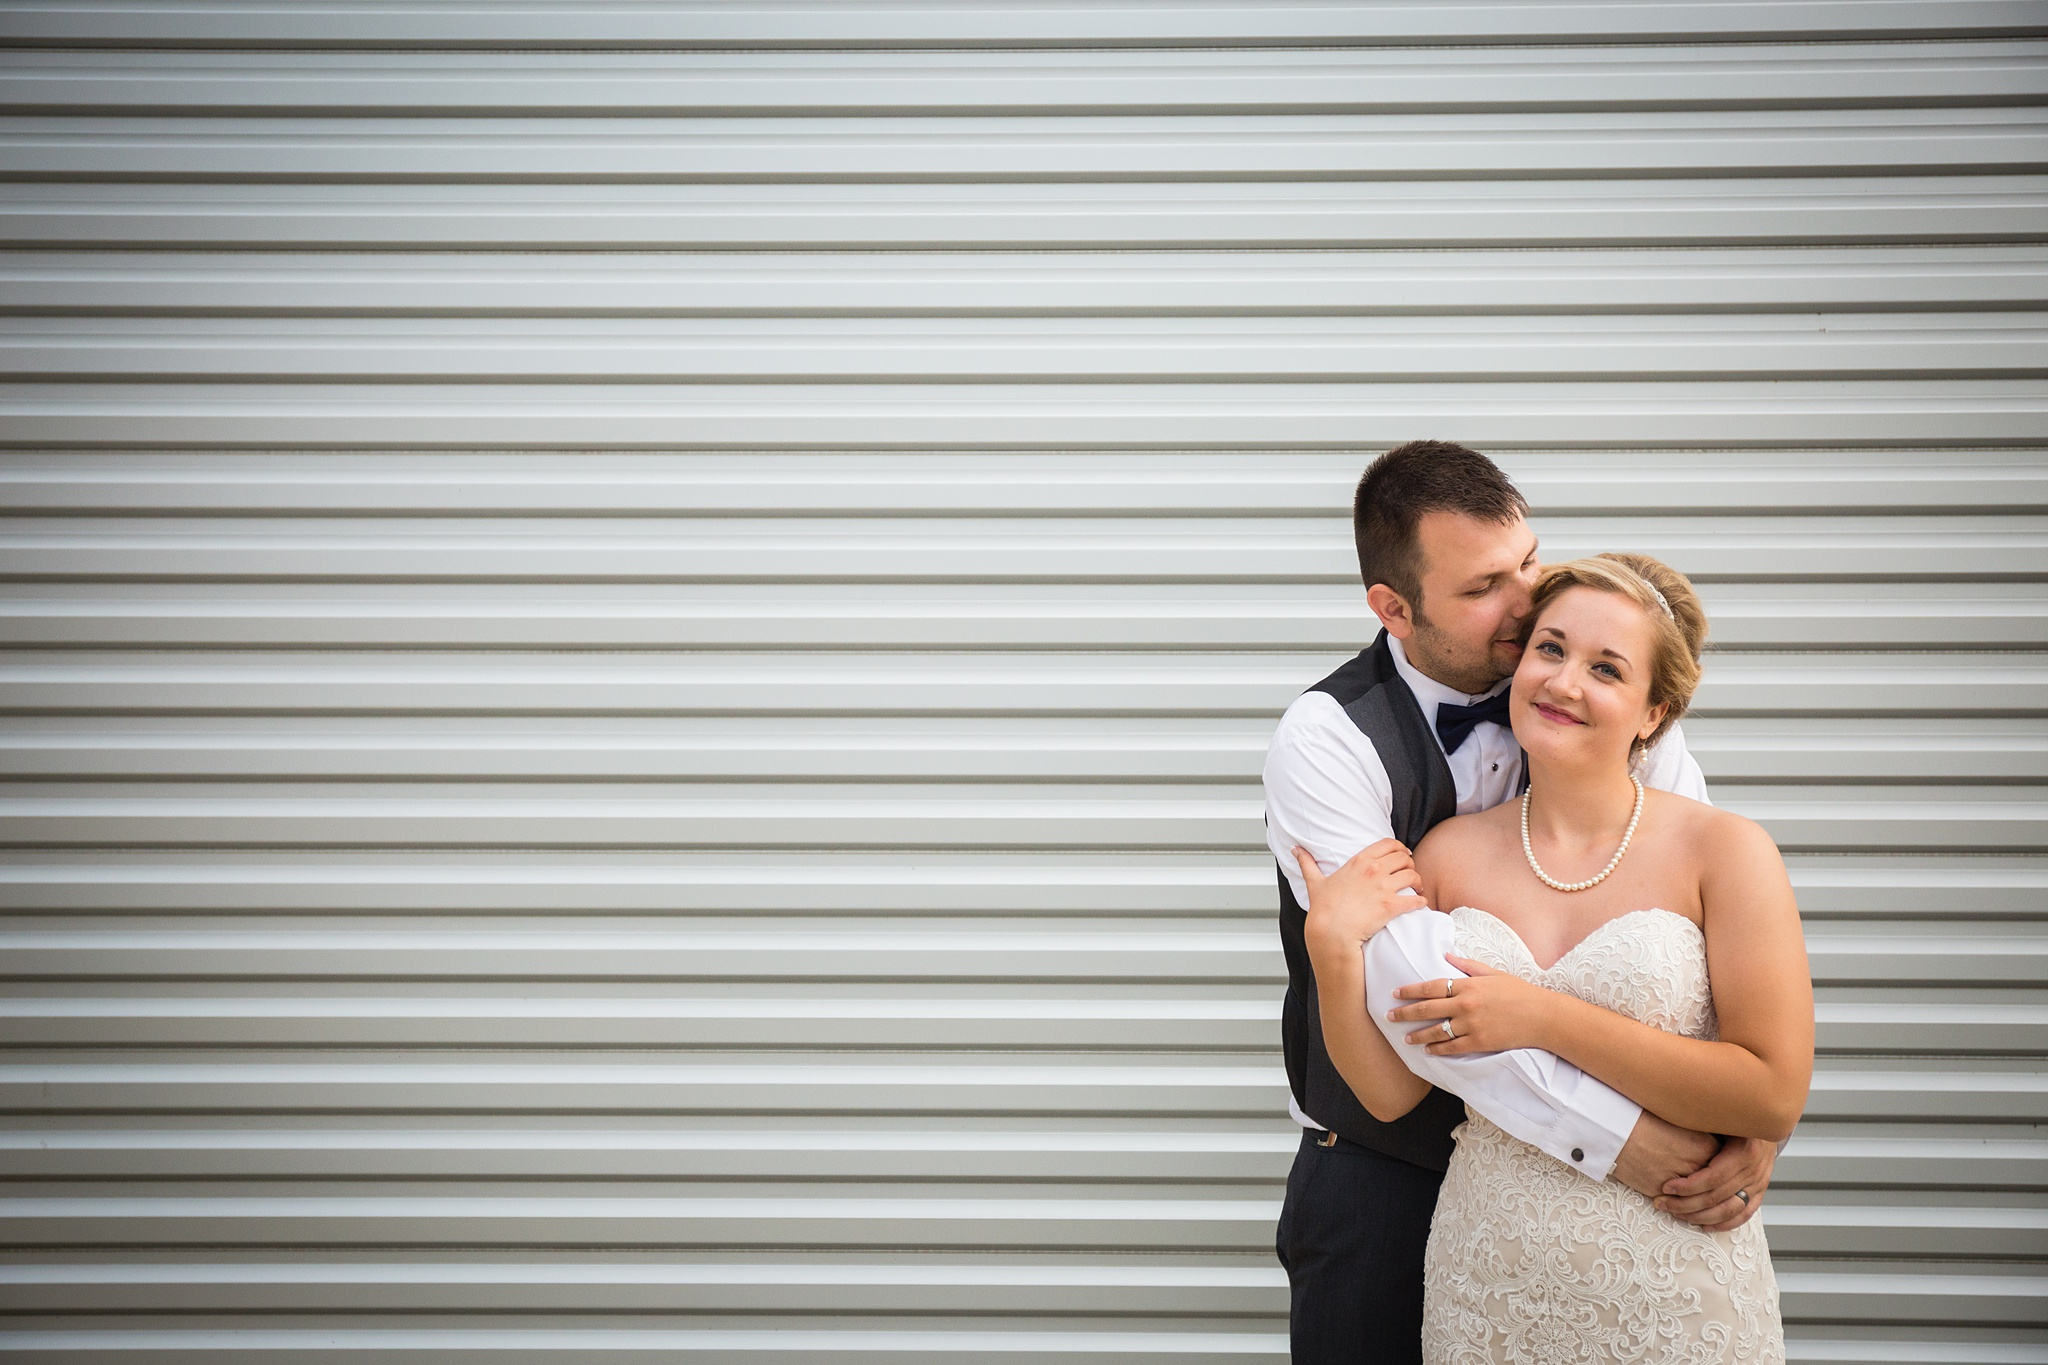 Brandon_Shafer_Photography_Grand_Rapids_Bride_Groom_0050.jpg